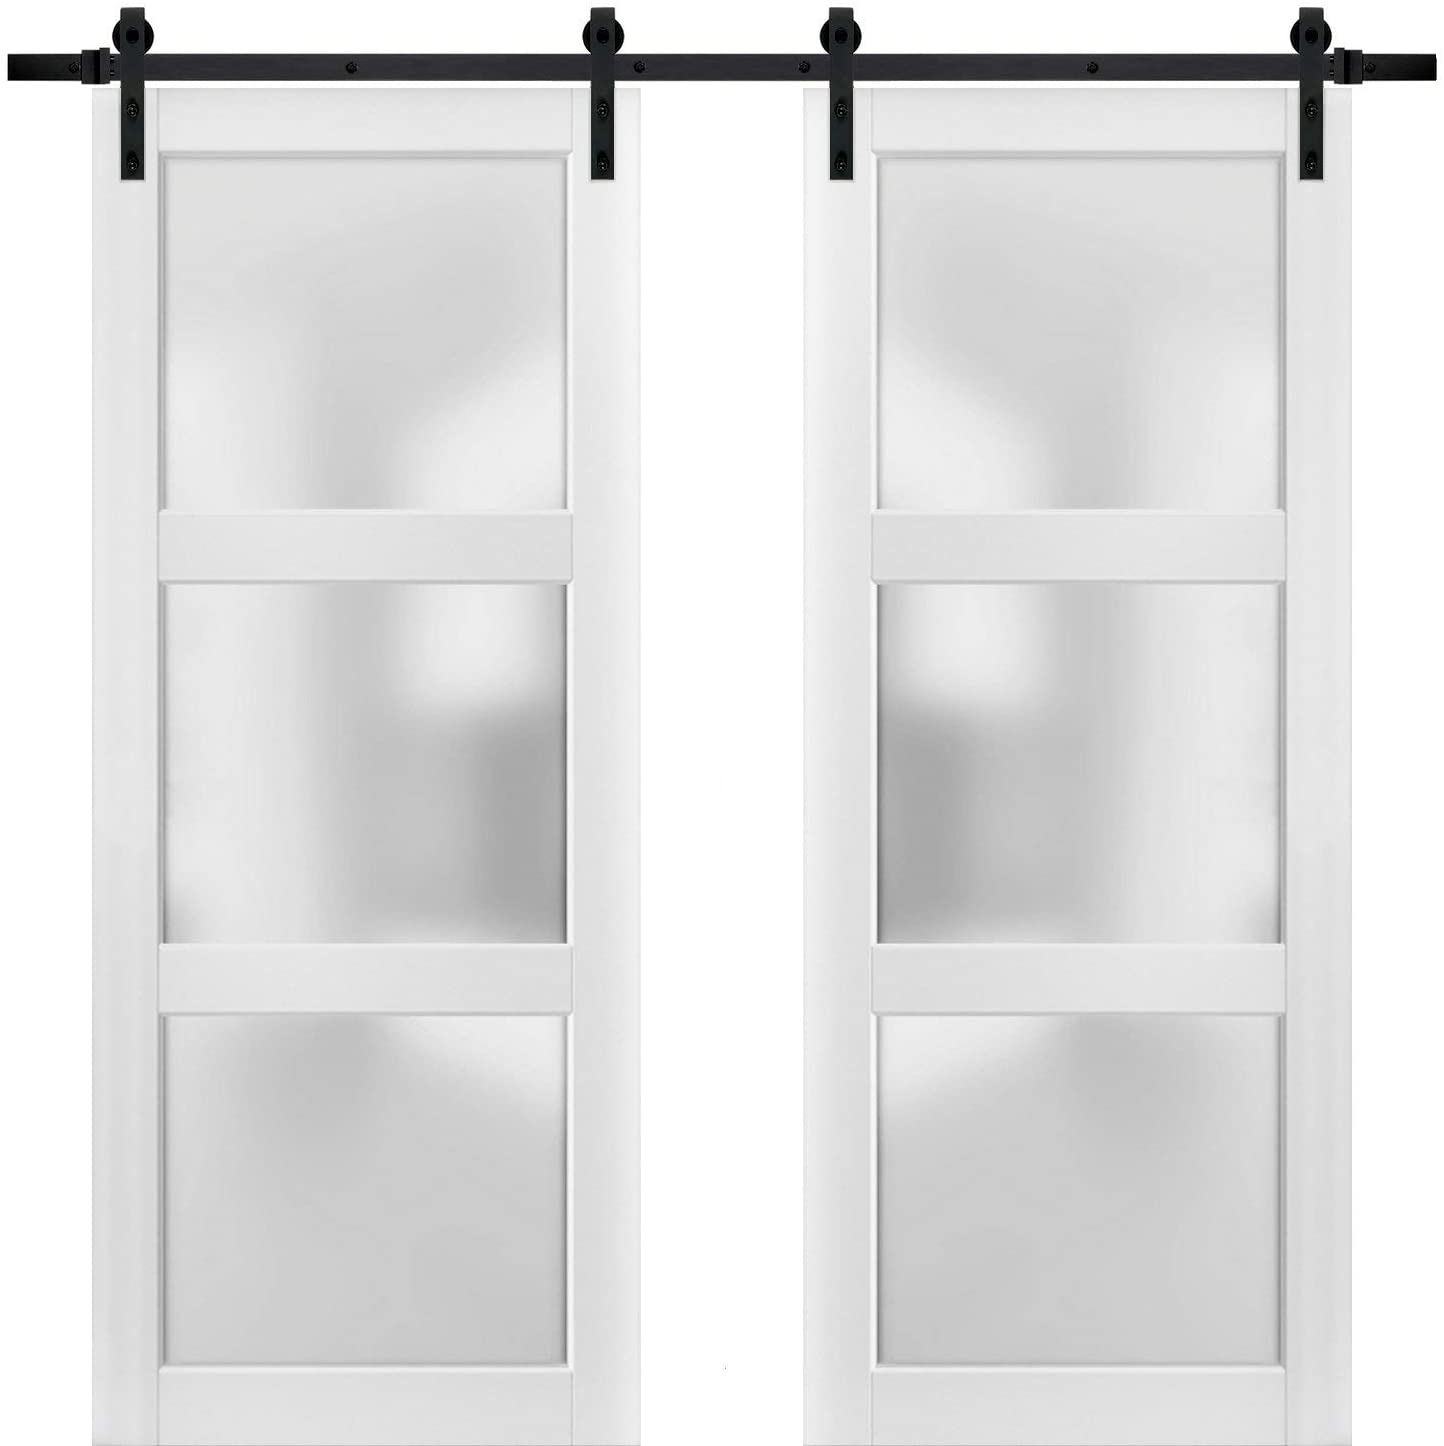 Sturdy Double Barn Door 72 x 84 inches with Frosted Glass 3 Lites | Lucia 2552 Matte White | Top Mount 13FT Rail Hangers Heavy Set | Solid Panel Interior Doors